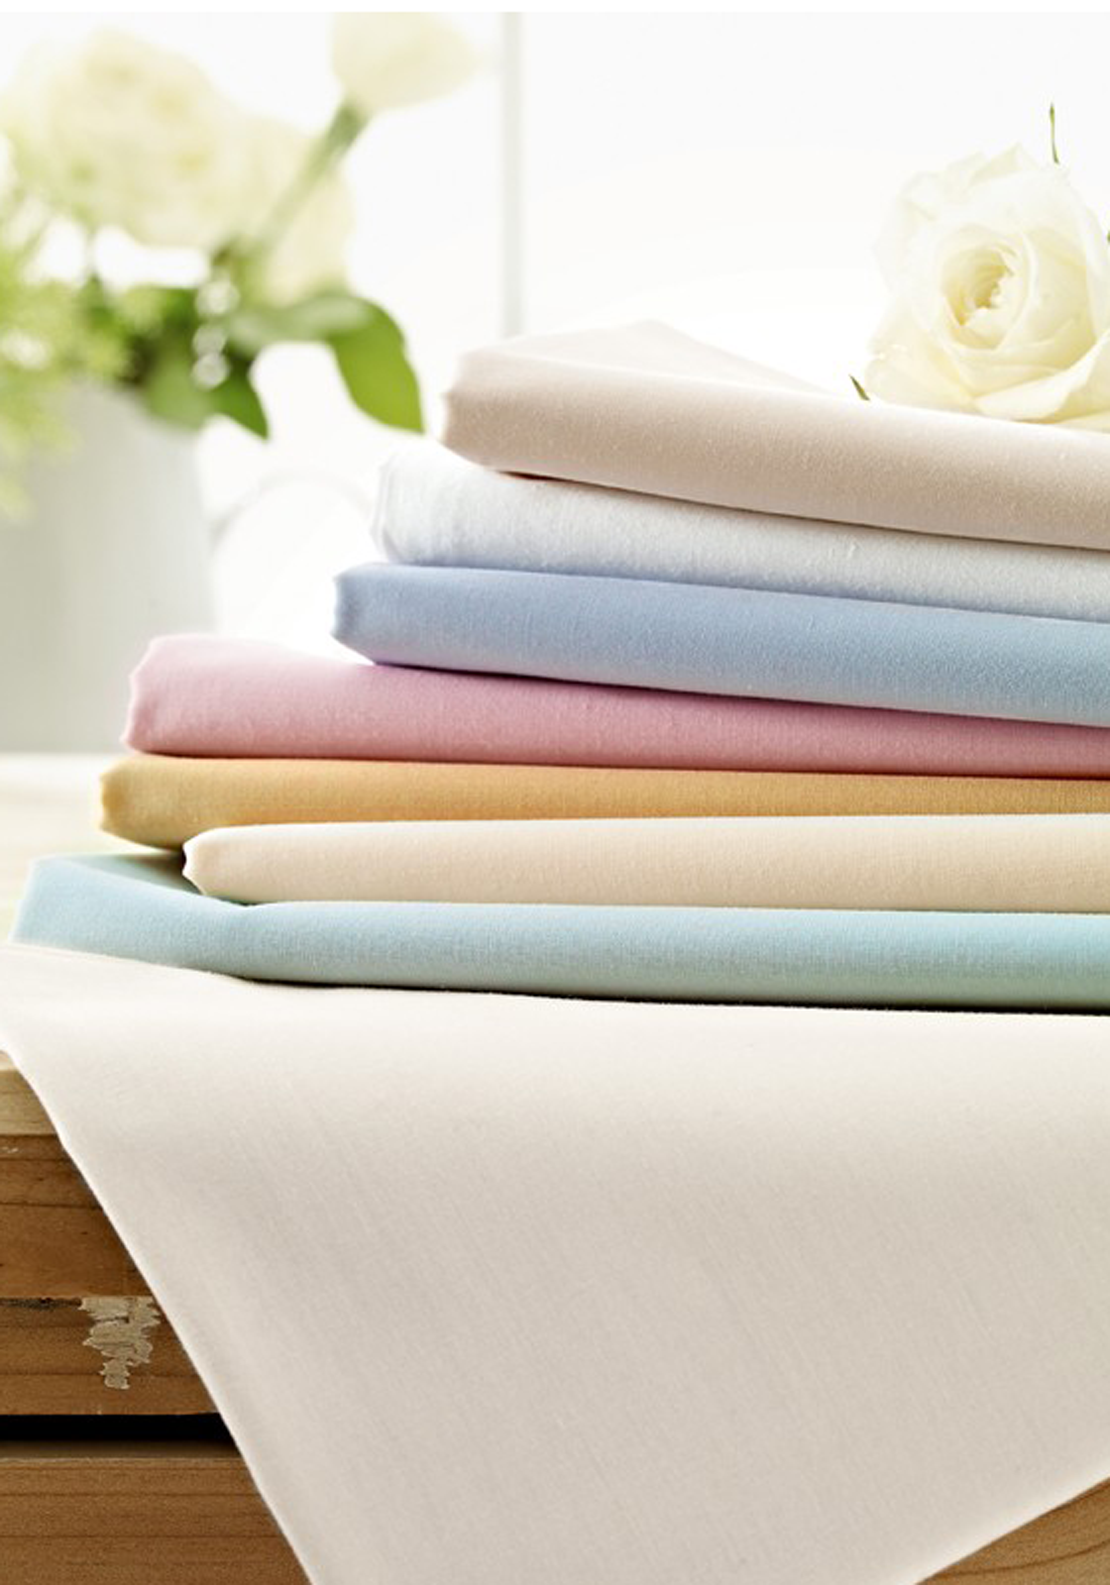 Helena Springfield 180 Thread Court Percale Standard Pillowcase, Linen